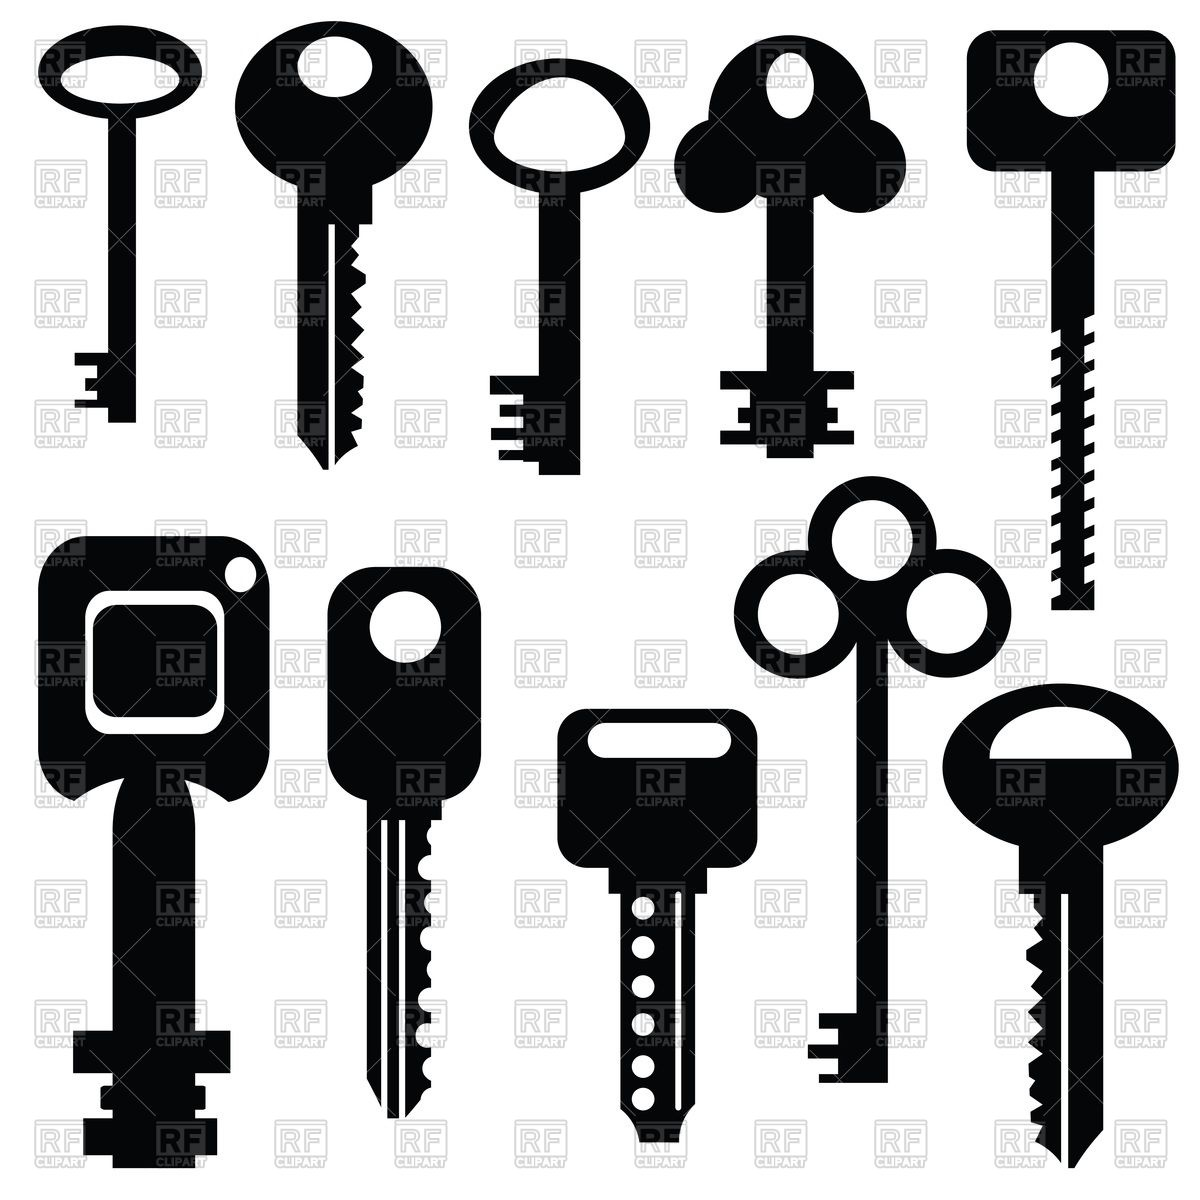 Pictograms (silhouettes) of modern and old keys Vector Image.